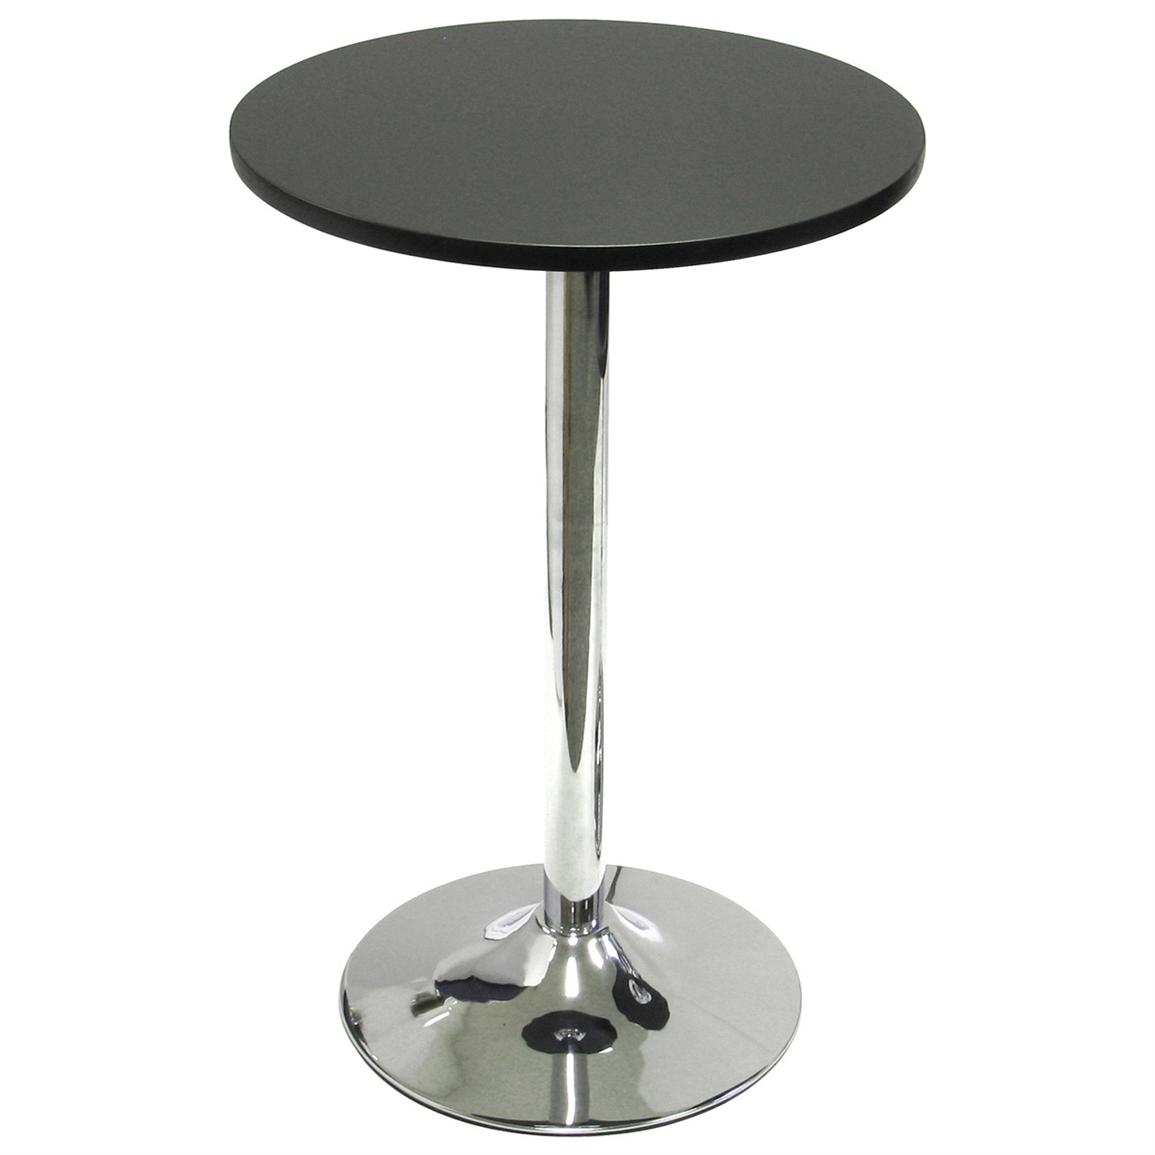 20 inch Winsome Bistro Table, Black / Metal